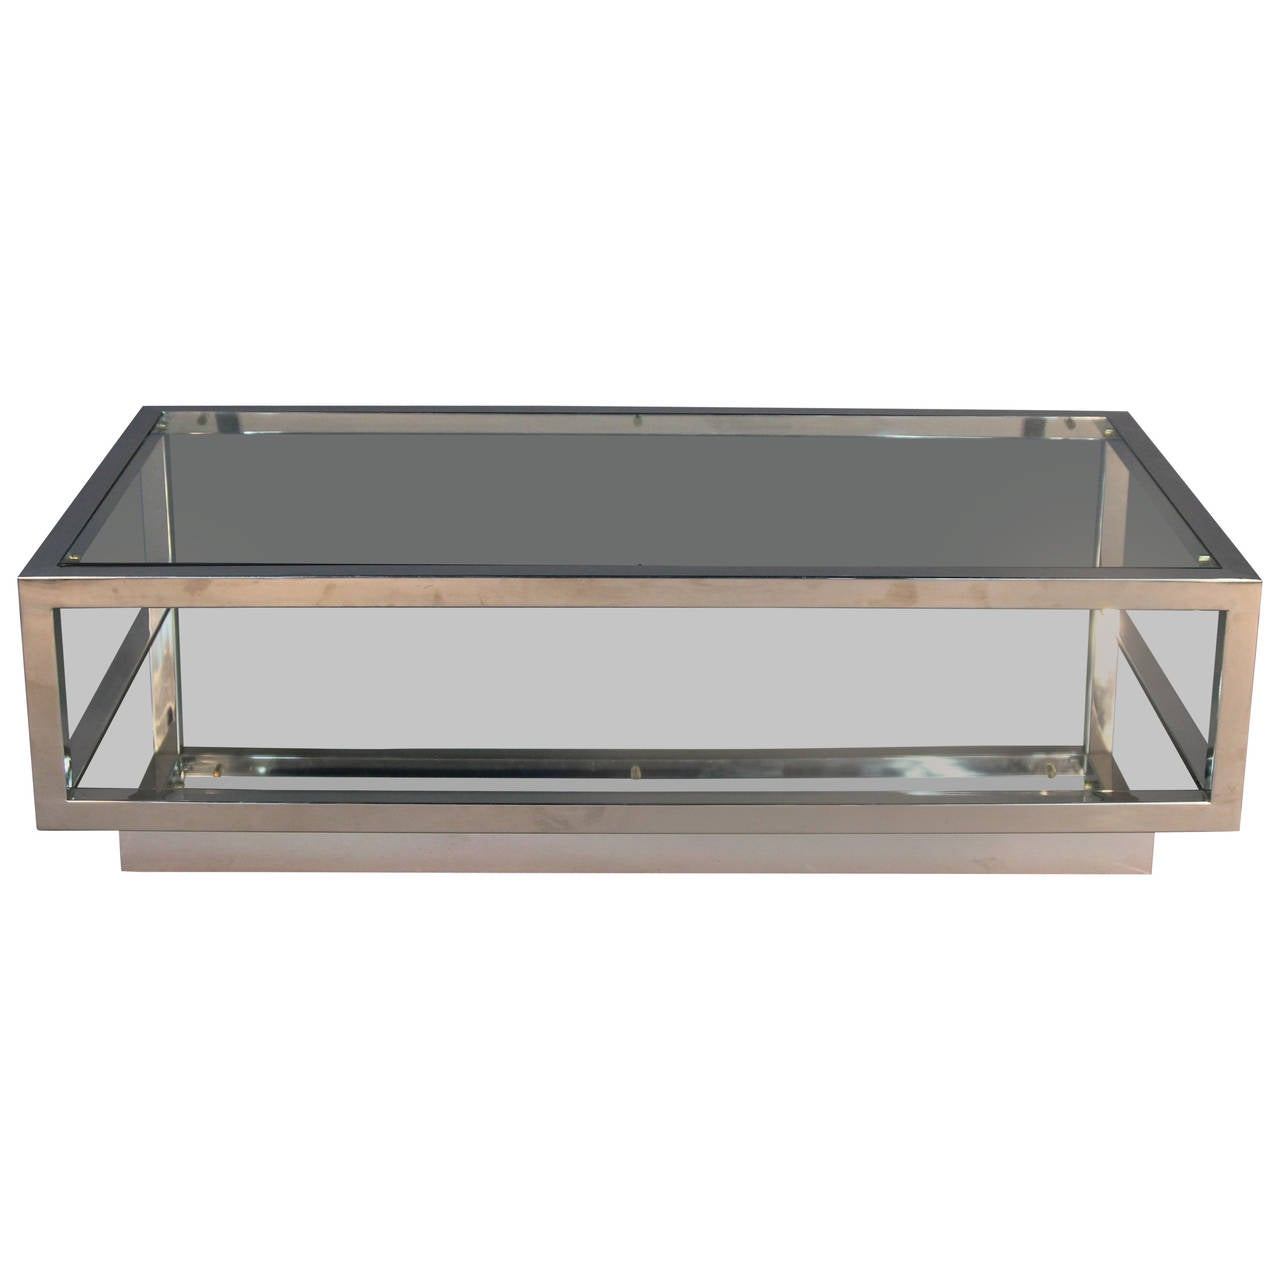 Chrome And Glass Top Coffee Table With Mirrored Shelf: glass coffee table tops